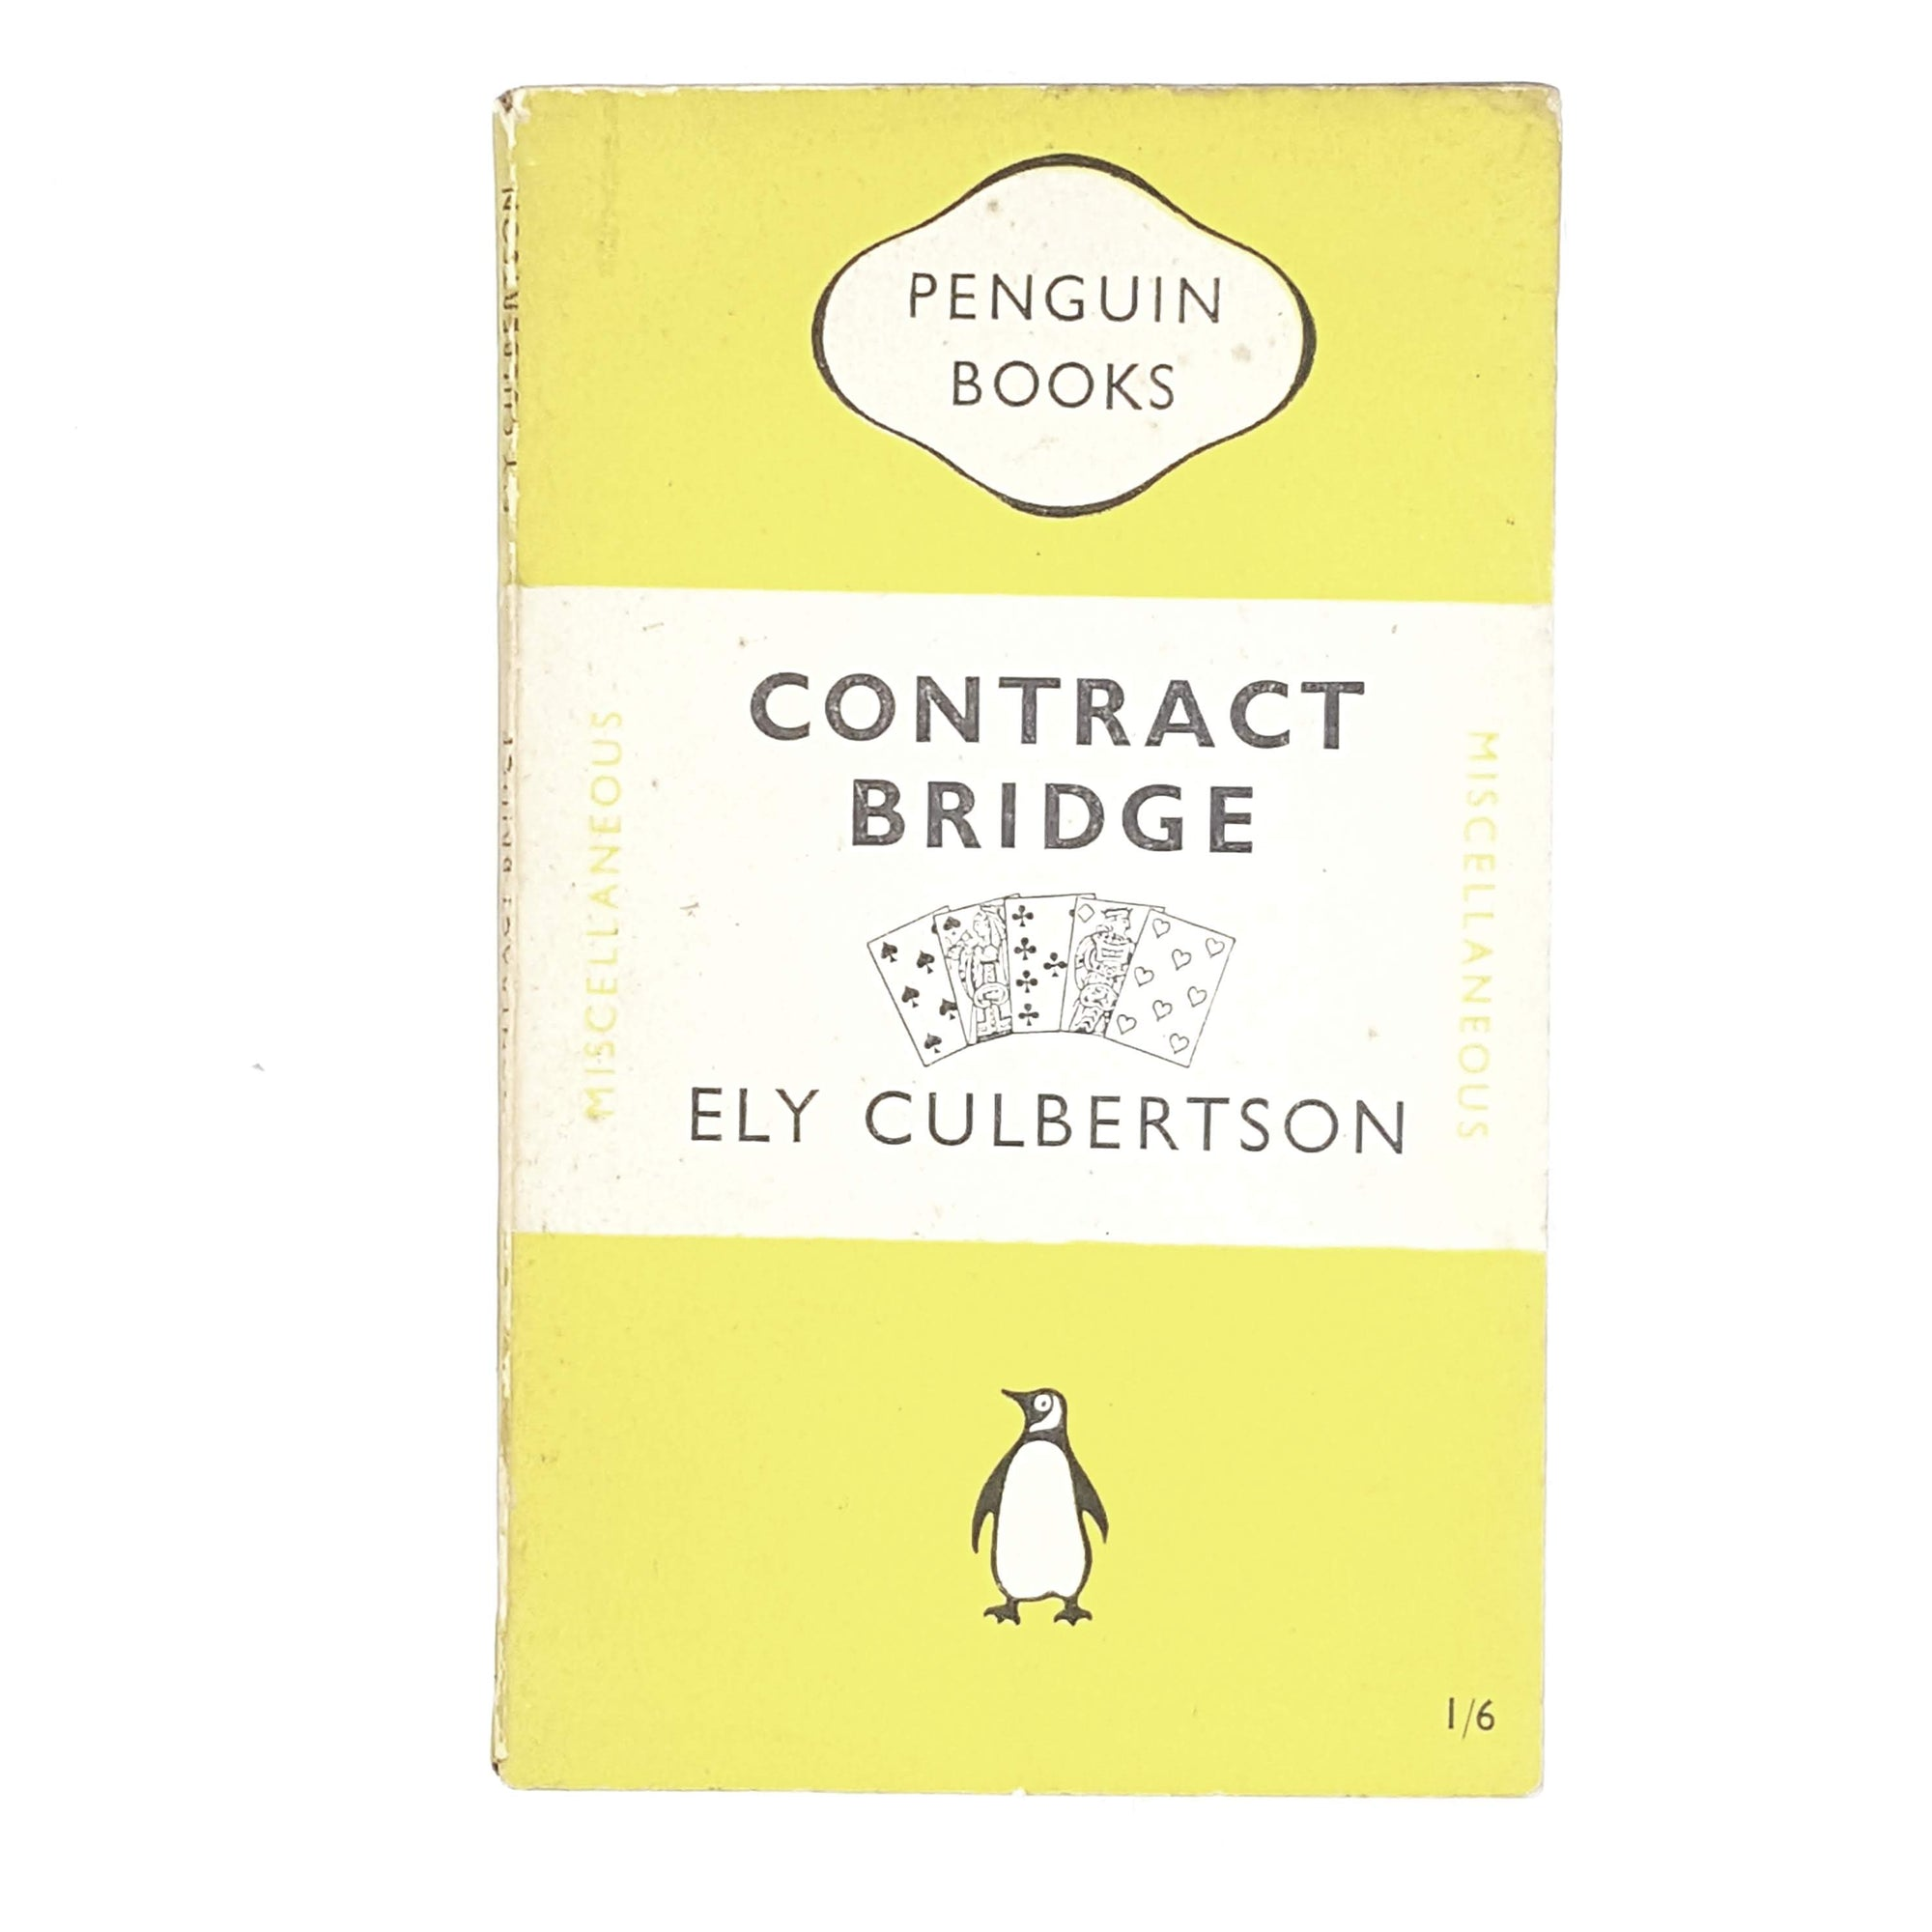 Contract Bridge by Ely Culbertson 1949